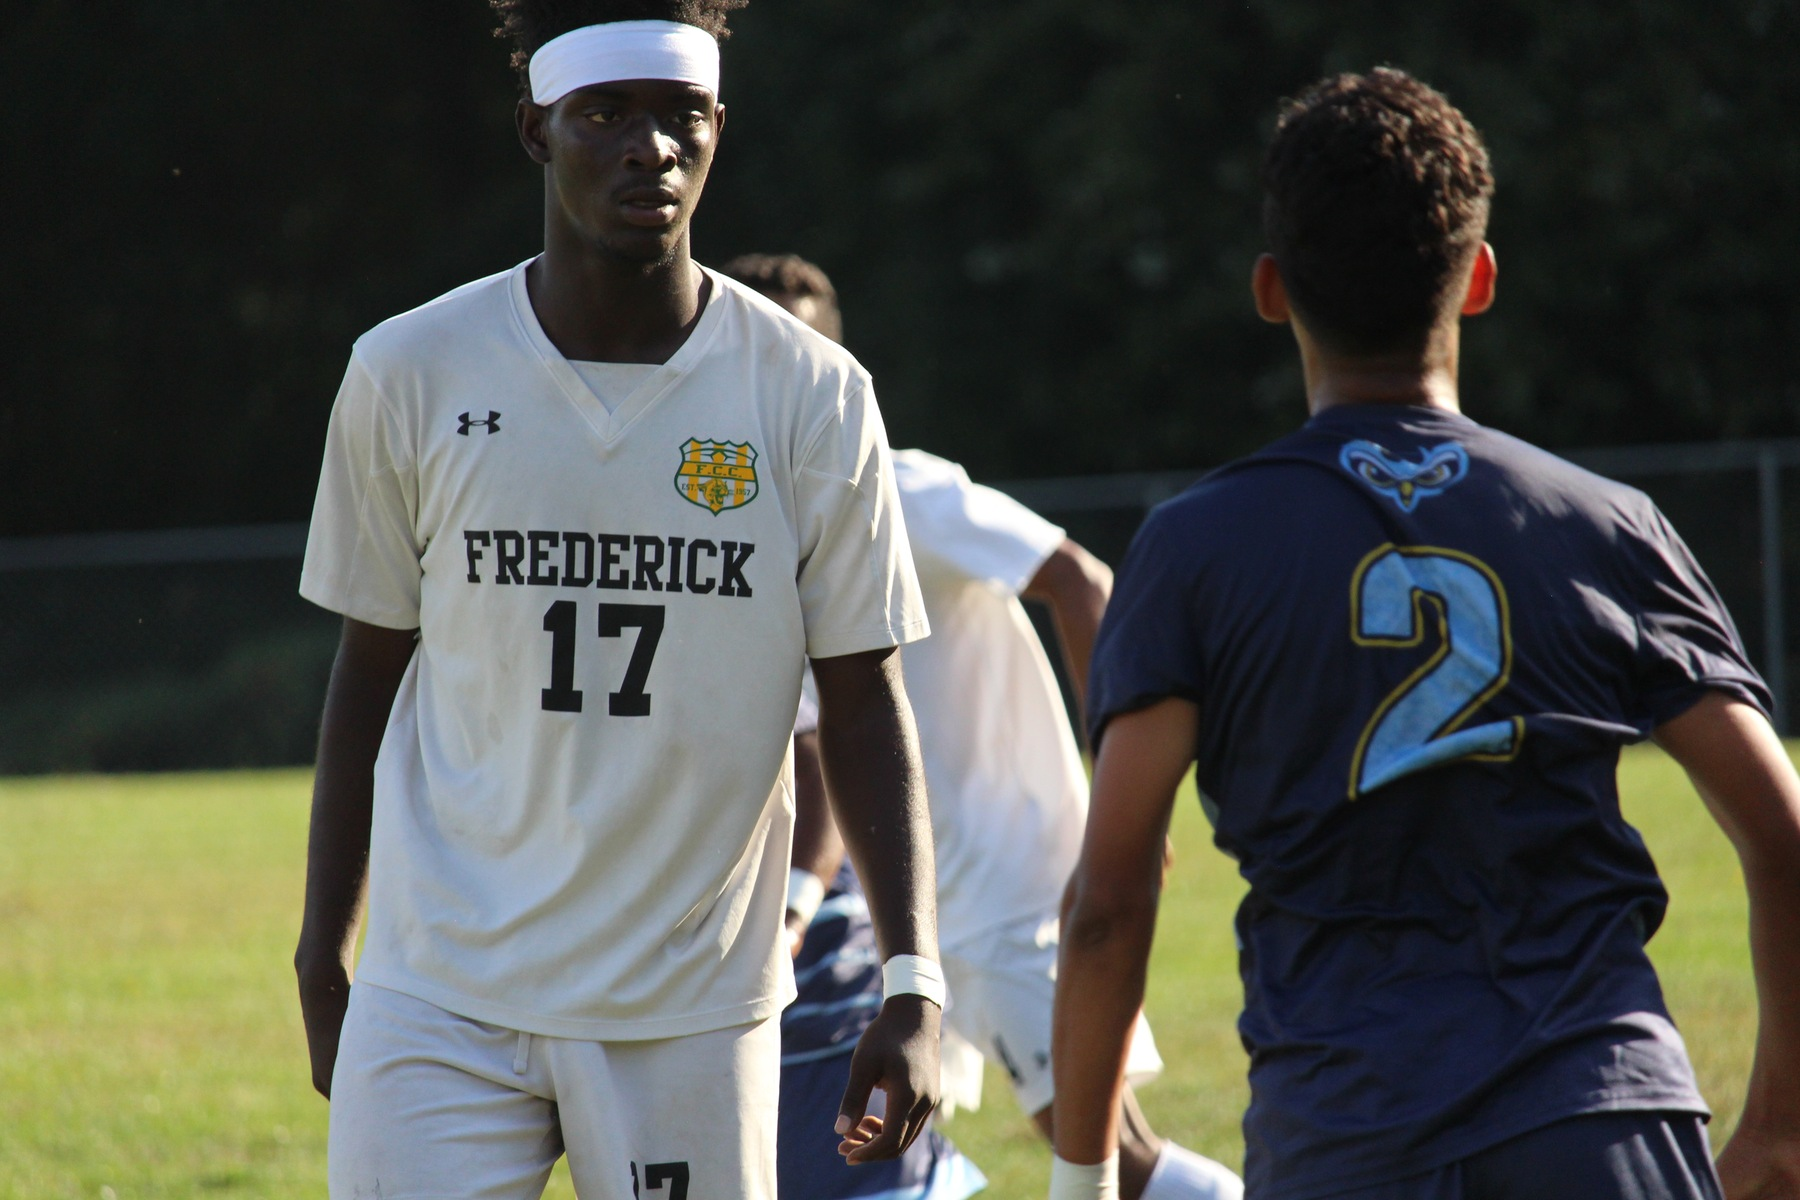 Cougars Upend Nationally-Ranked PGCC